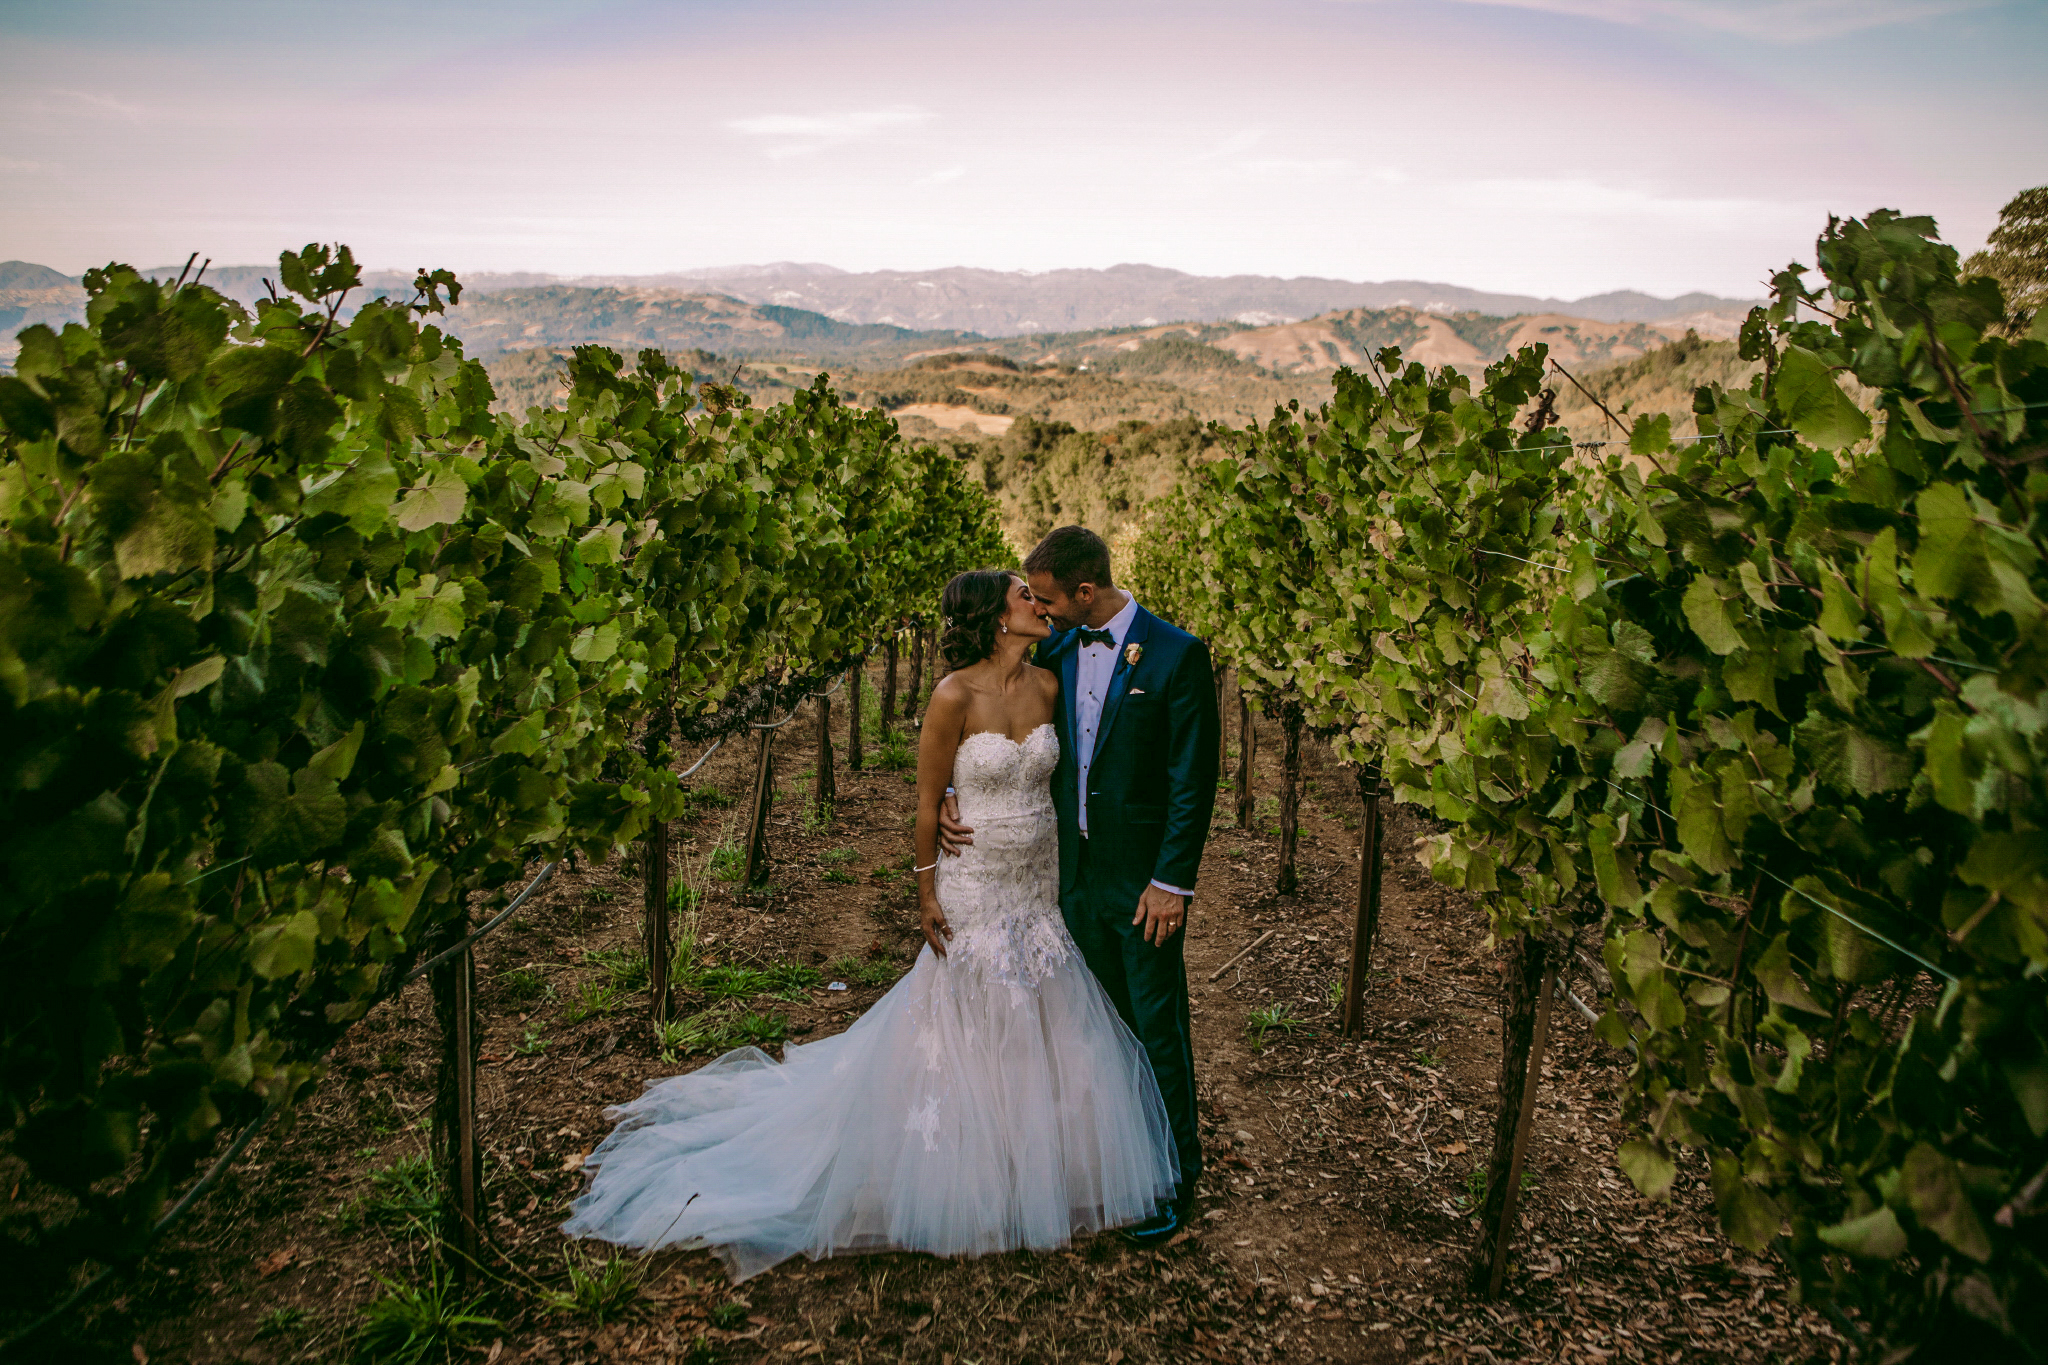 san diego wedding   photographer | groom holding bride from behind while standin in between rows   of plantation